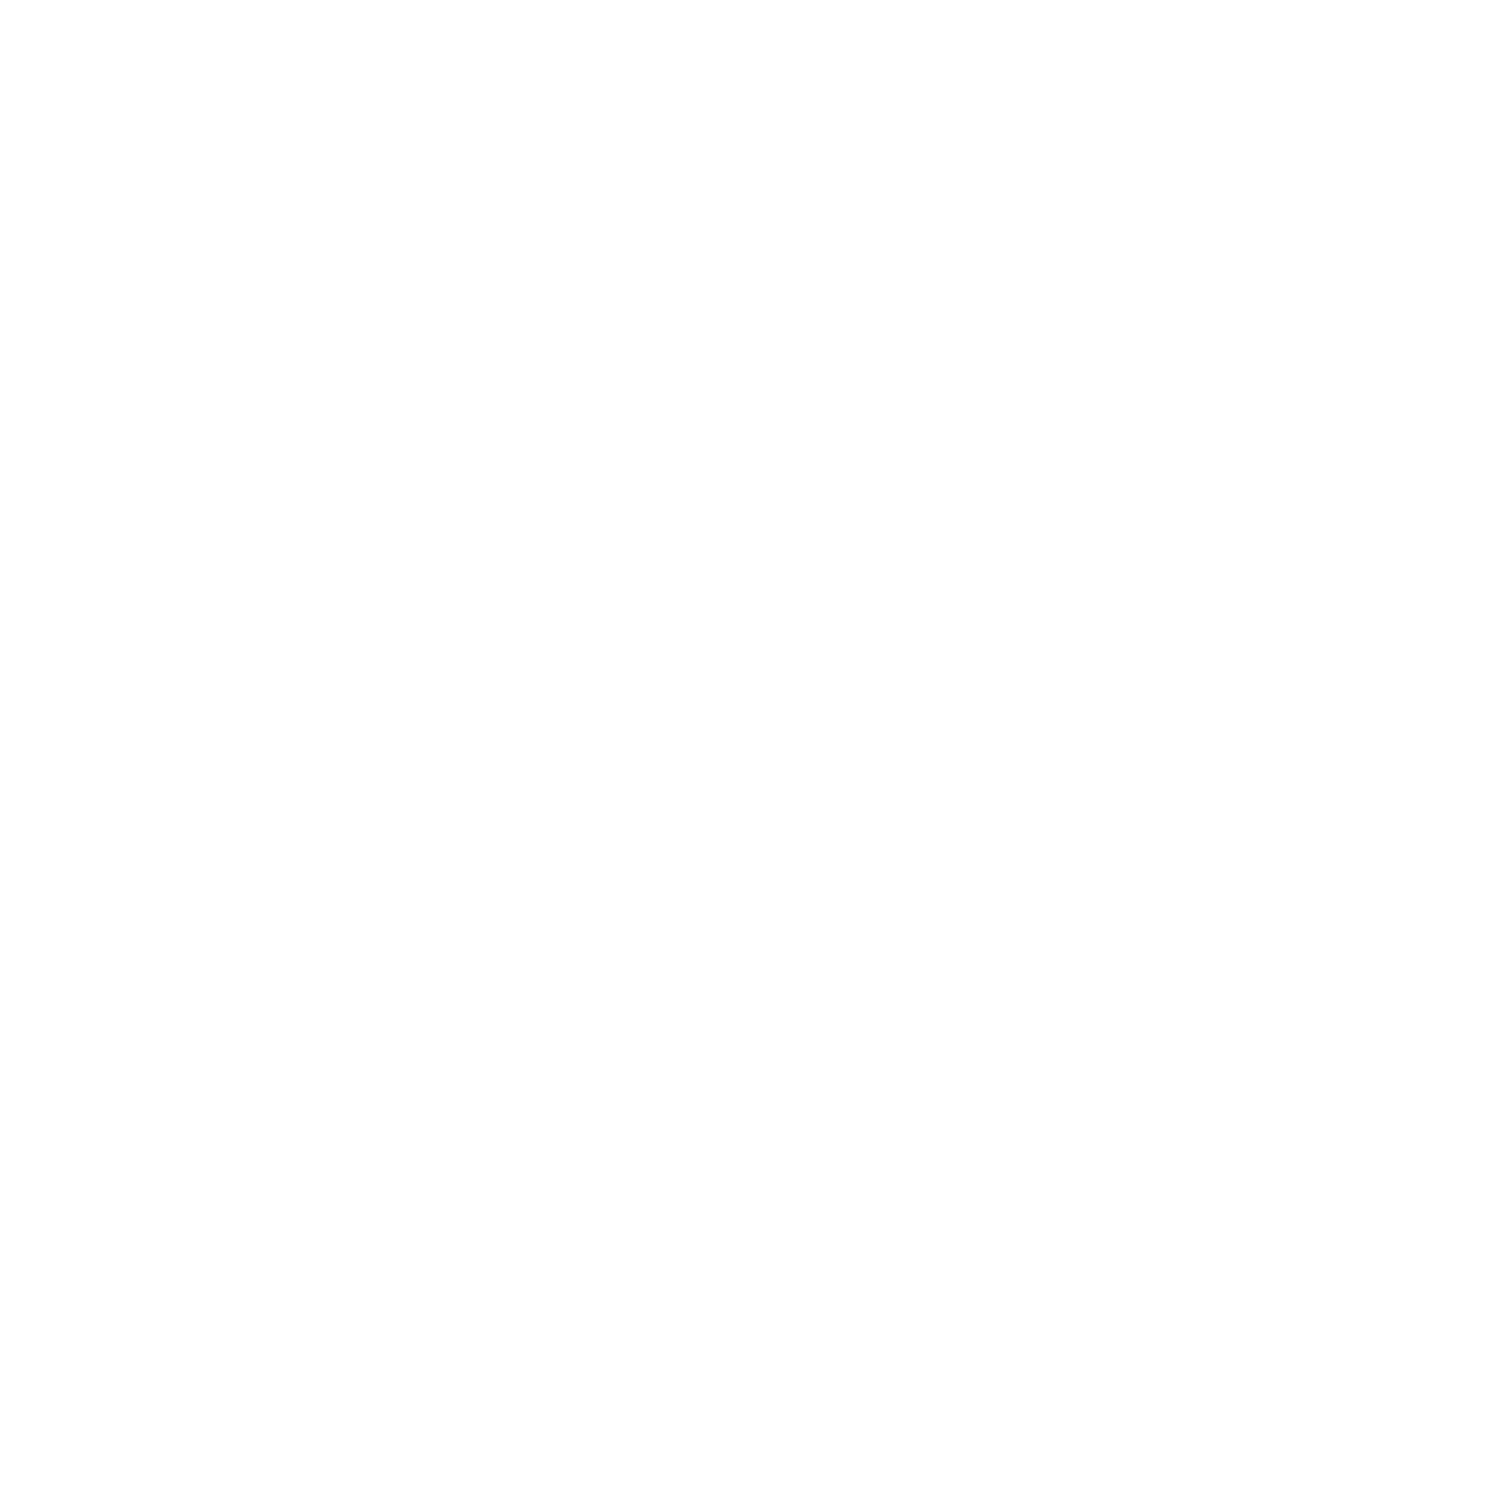 Hunter's Point Civic Association